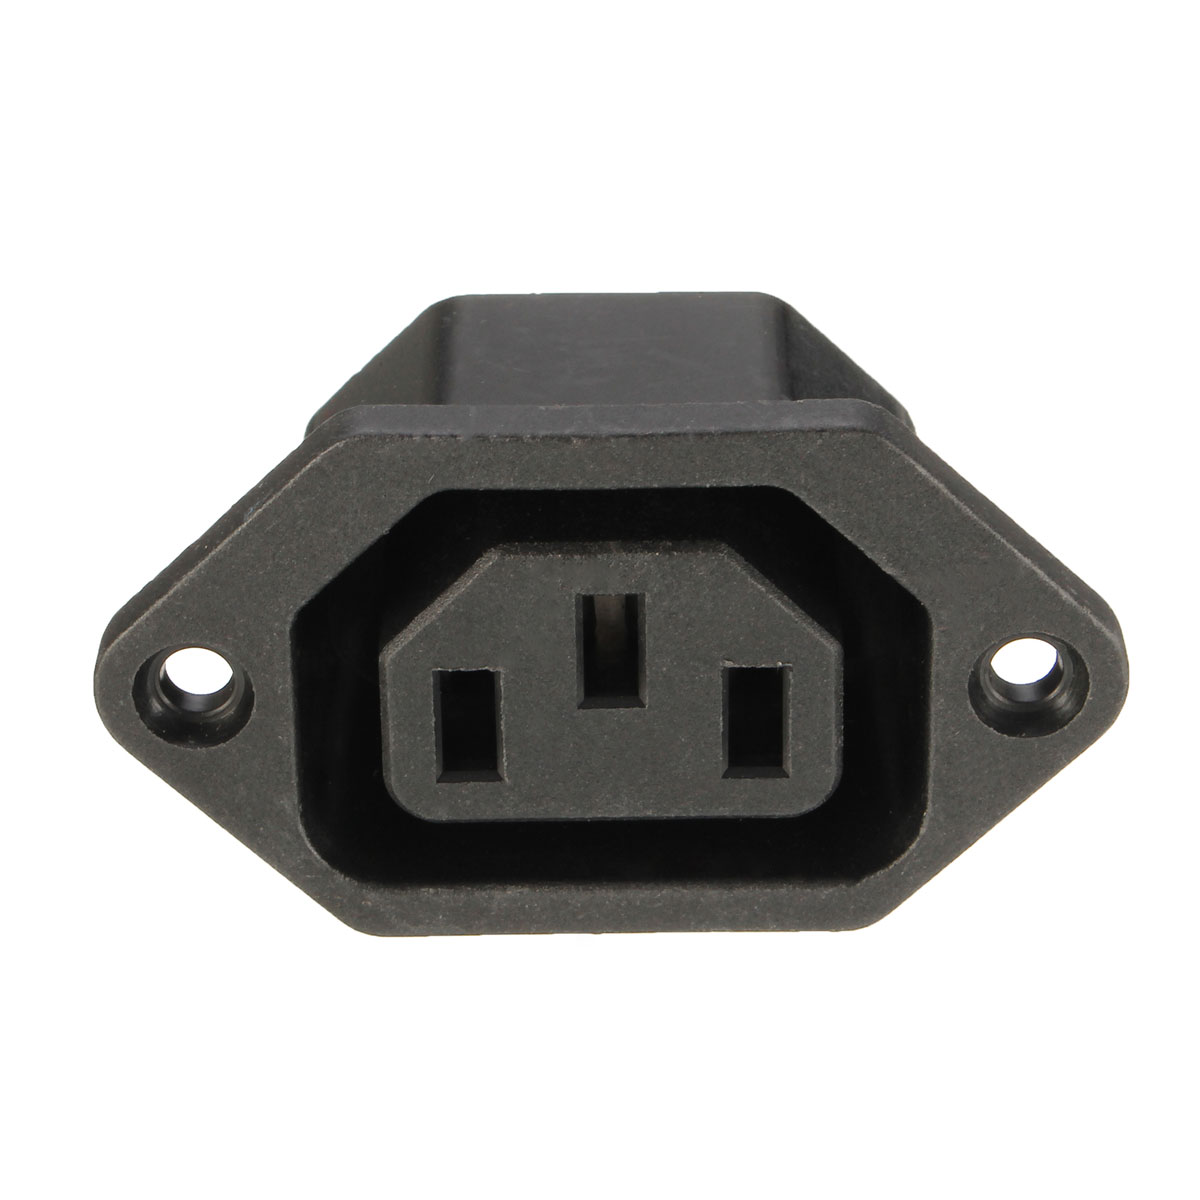 10pcs Chassis Female 15A/250V AC IEC Inline Socket Plug Adapter Mains Power Connector